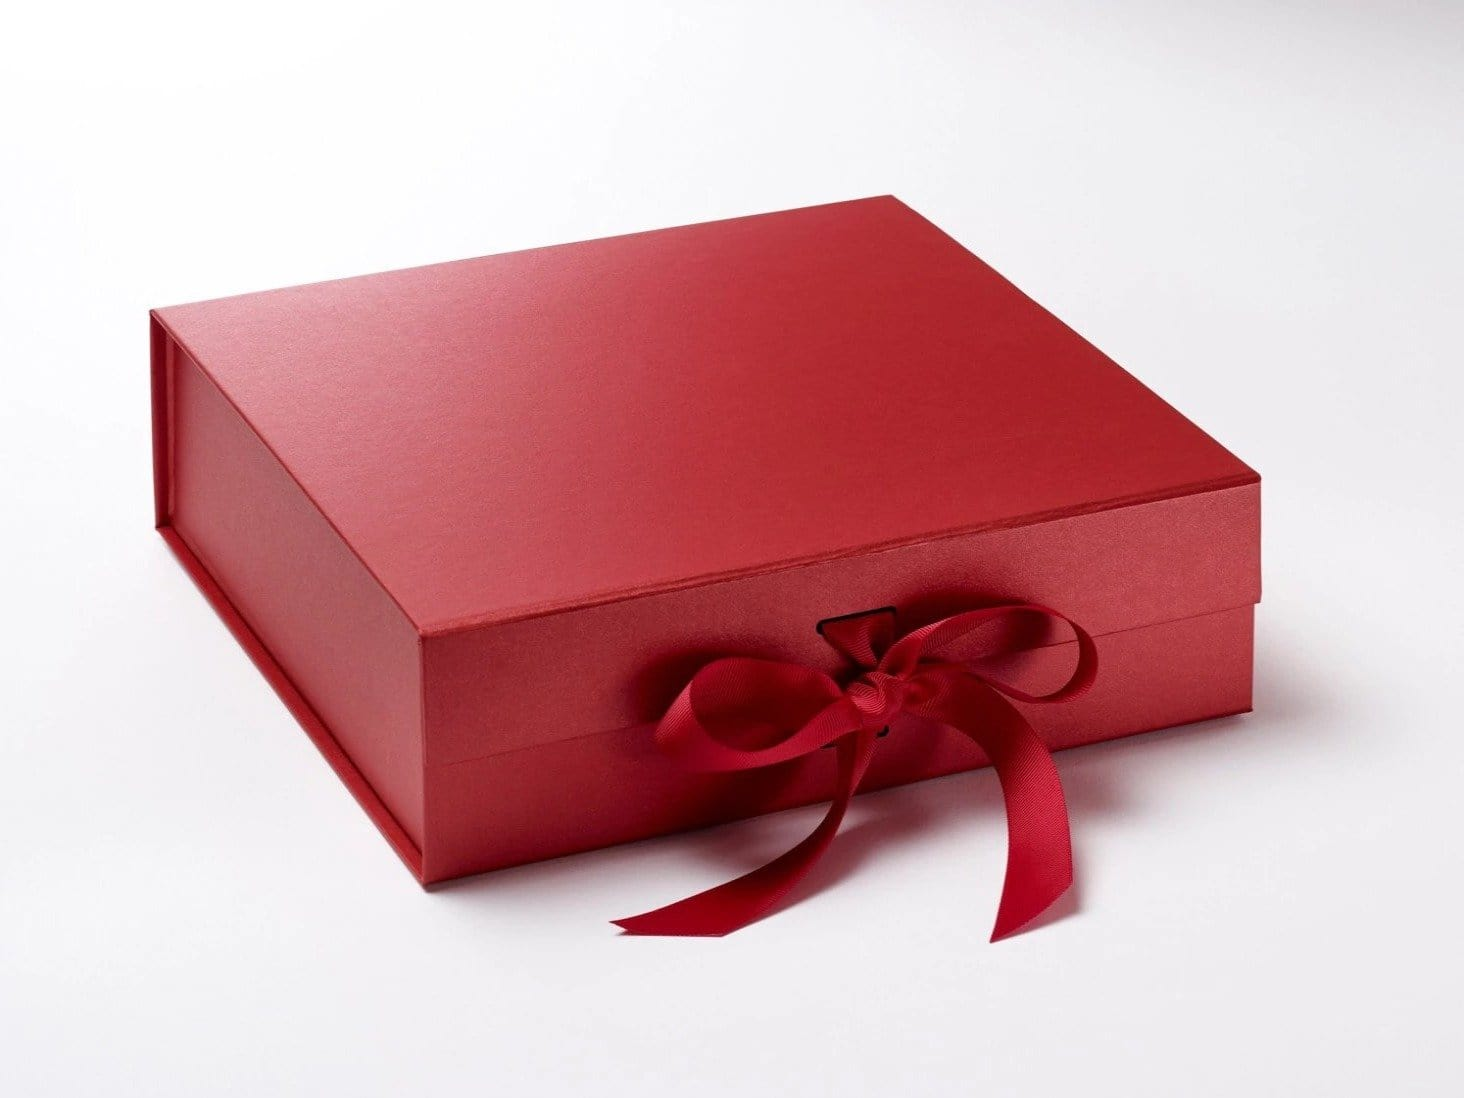 Pearl Red Large Gift Boxes with Slots and Ribbon from Foldabox ...